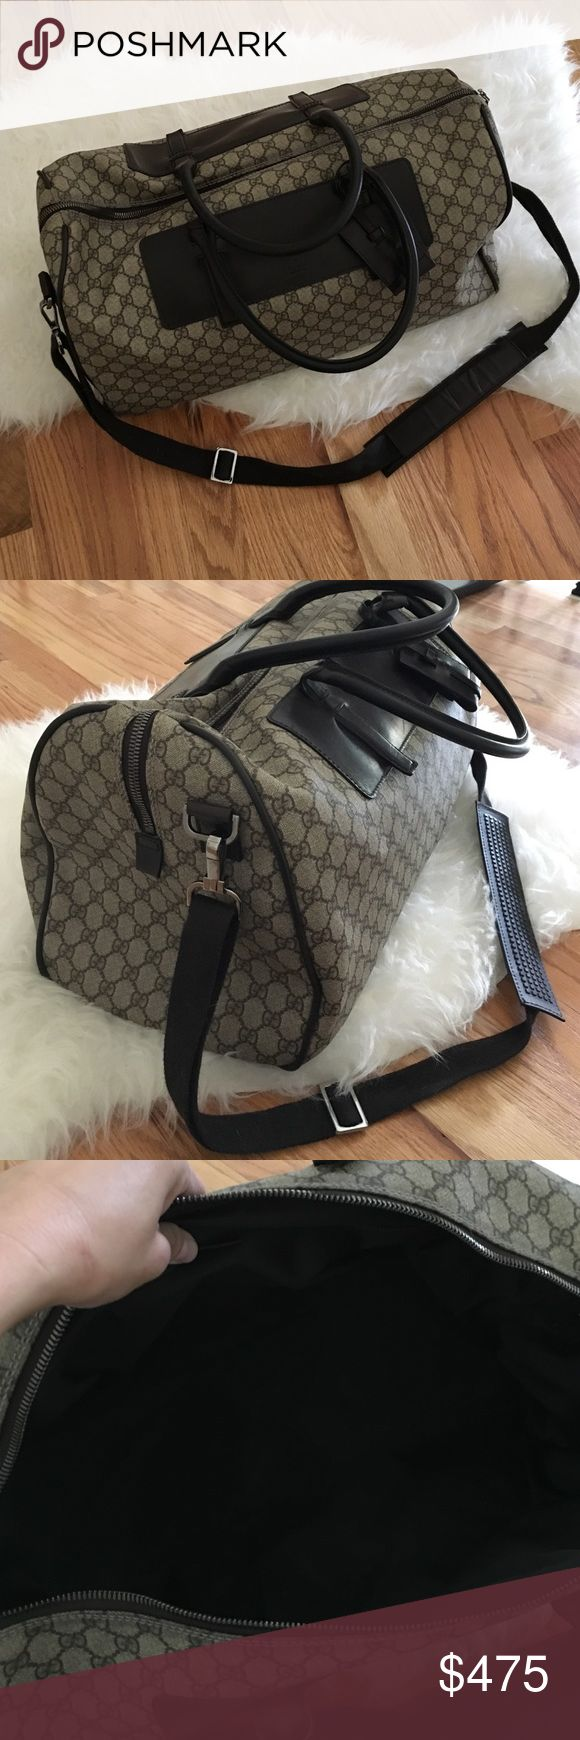 Gucci Carry on Duffle Bag This is a Beautiful Gucci Duffle bag that is a perfect carry on for airplanes or great as a weekender bag! This bag is 100% authentic and was purchased by me from Gucci. Smoke free home. It is in amazing condition no big marks or stains. Zero stains on the inside, inside is like new! Zero tears on the corners. Dimensions are: 19inches long by 11 inches deep by 9.5 inches wide Gucci Bags Travel Bags